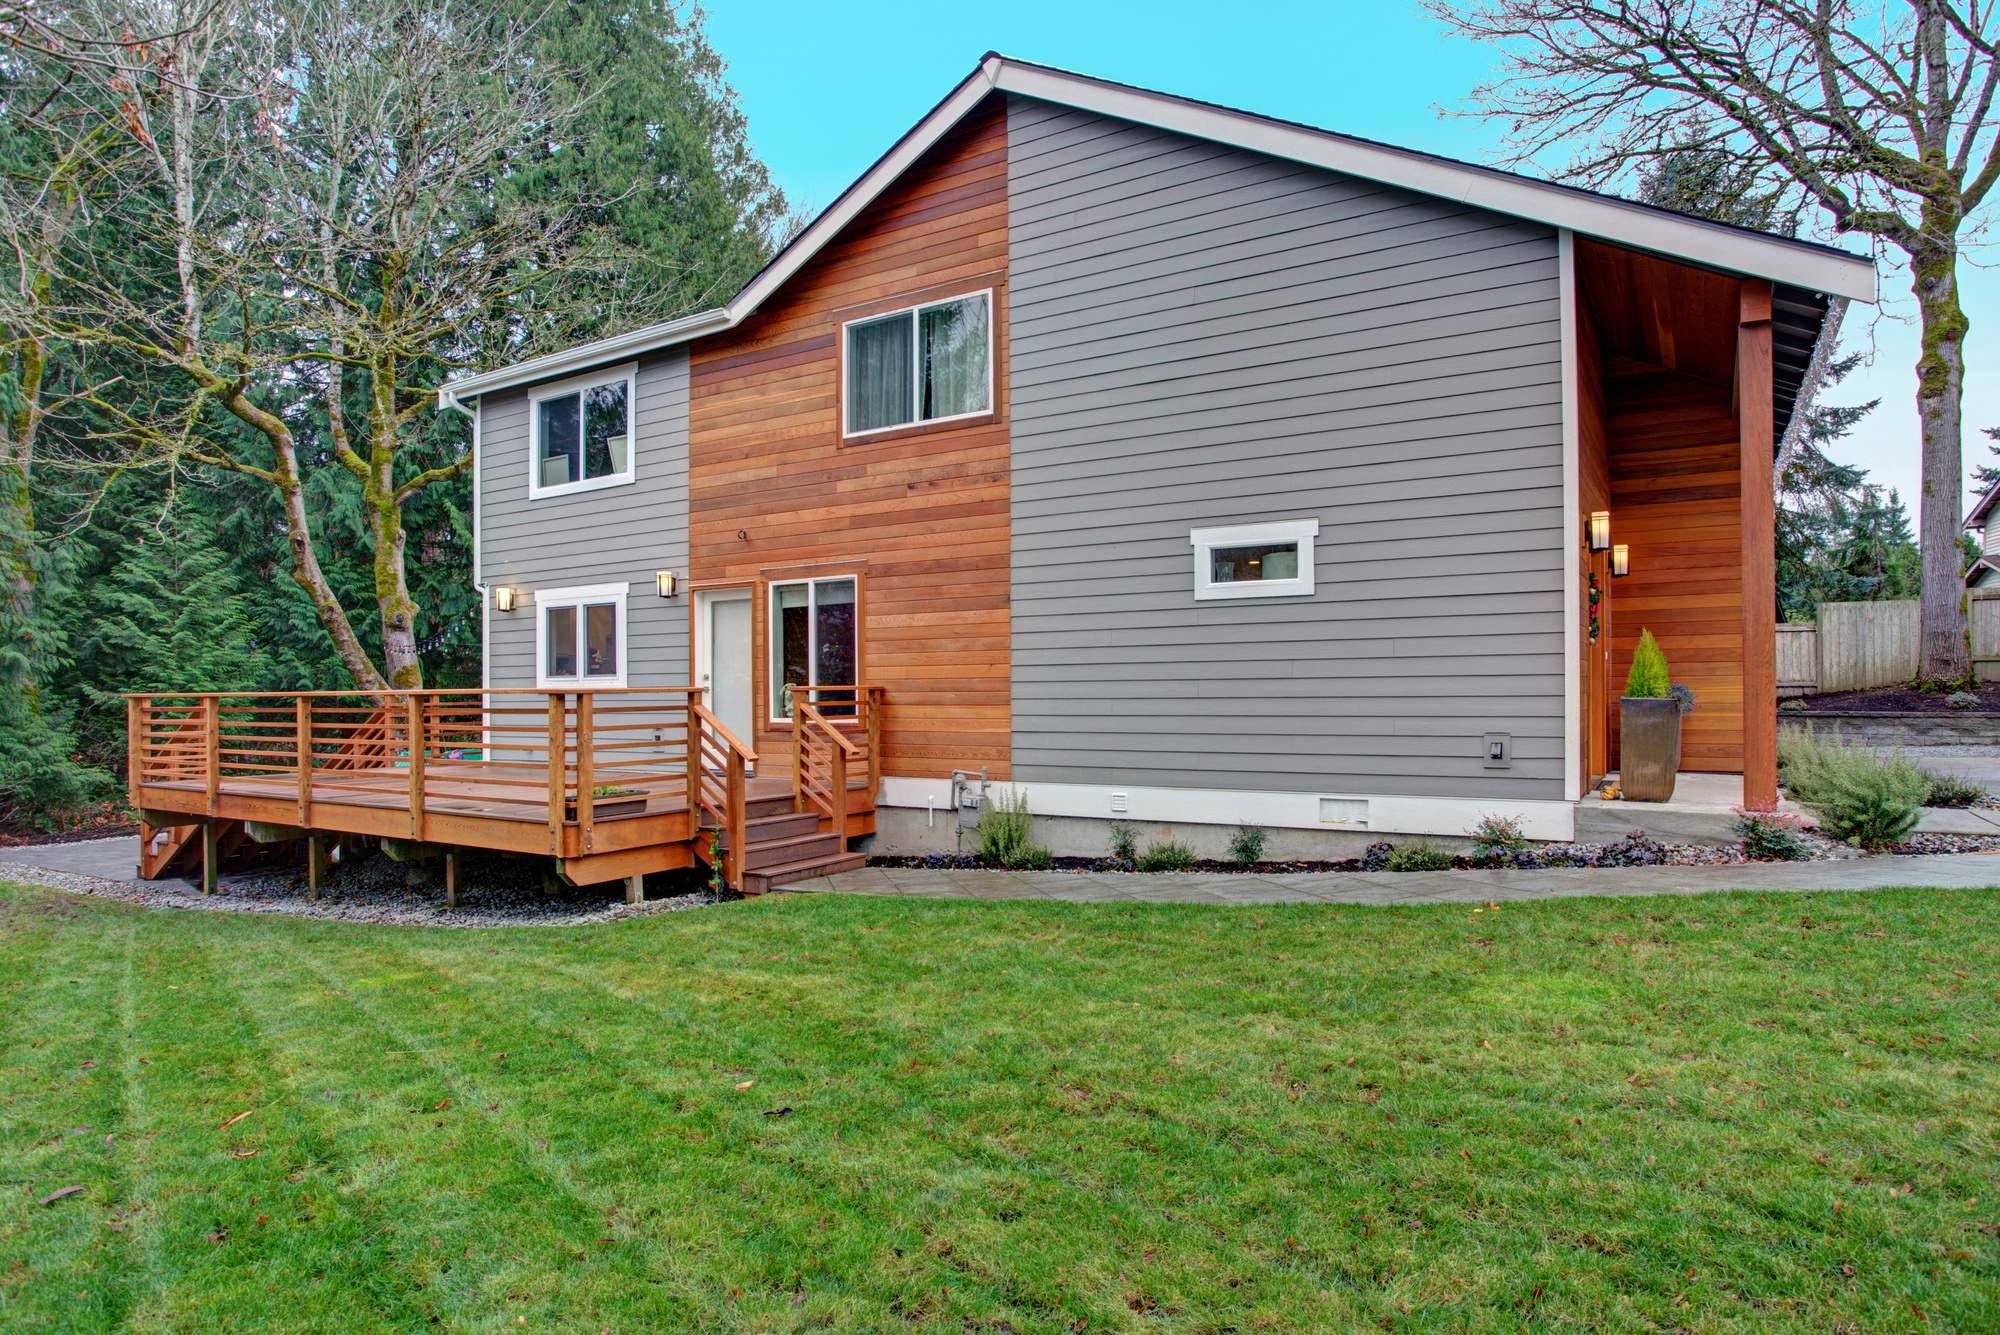 9 Beautiful Exterior Siding Ideas and Options for Your Home